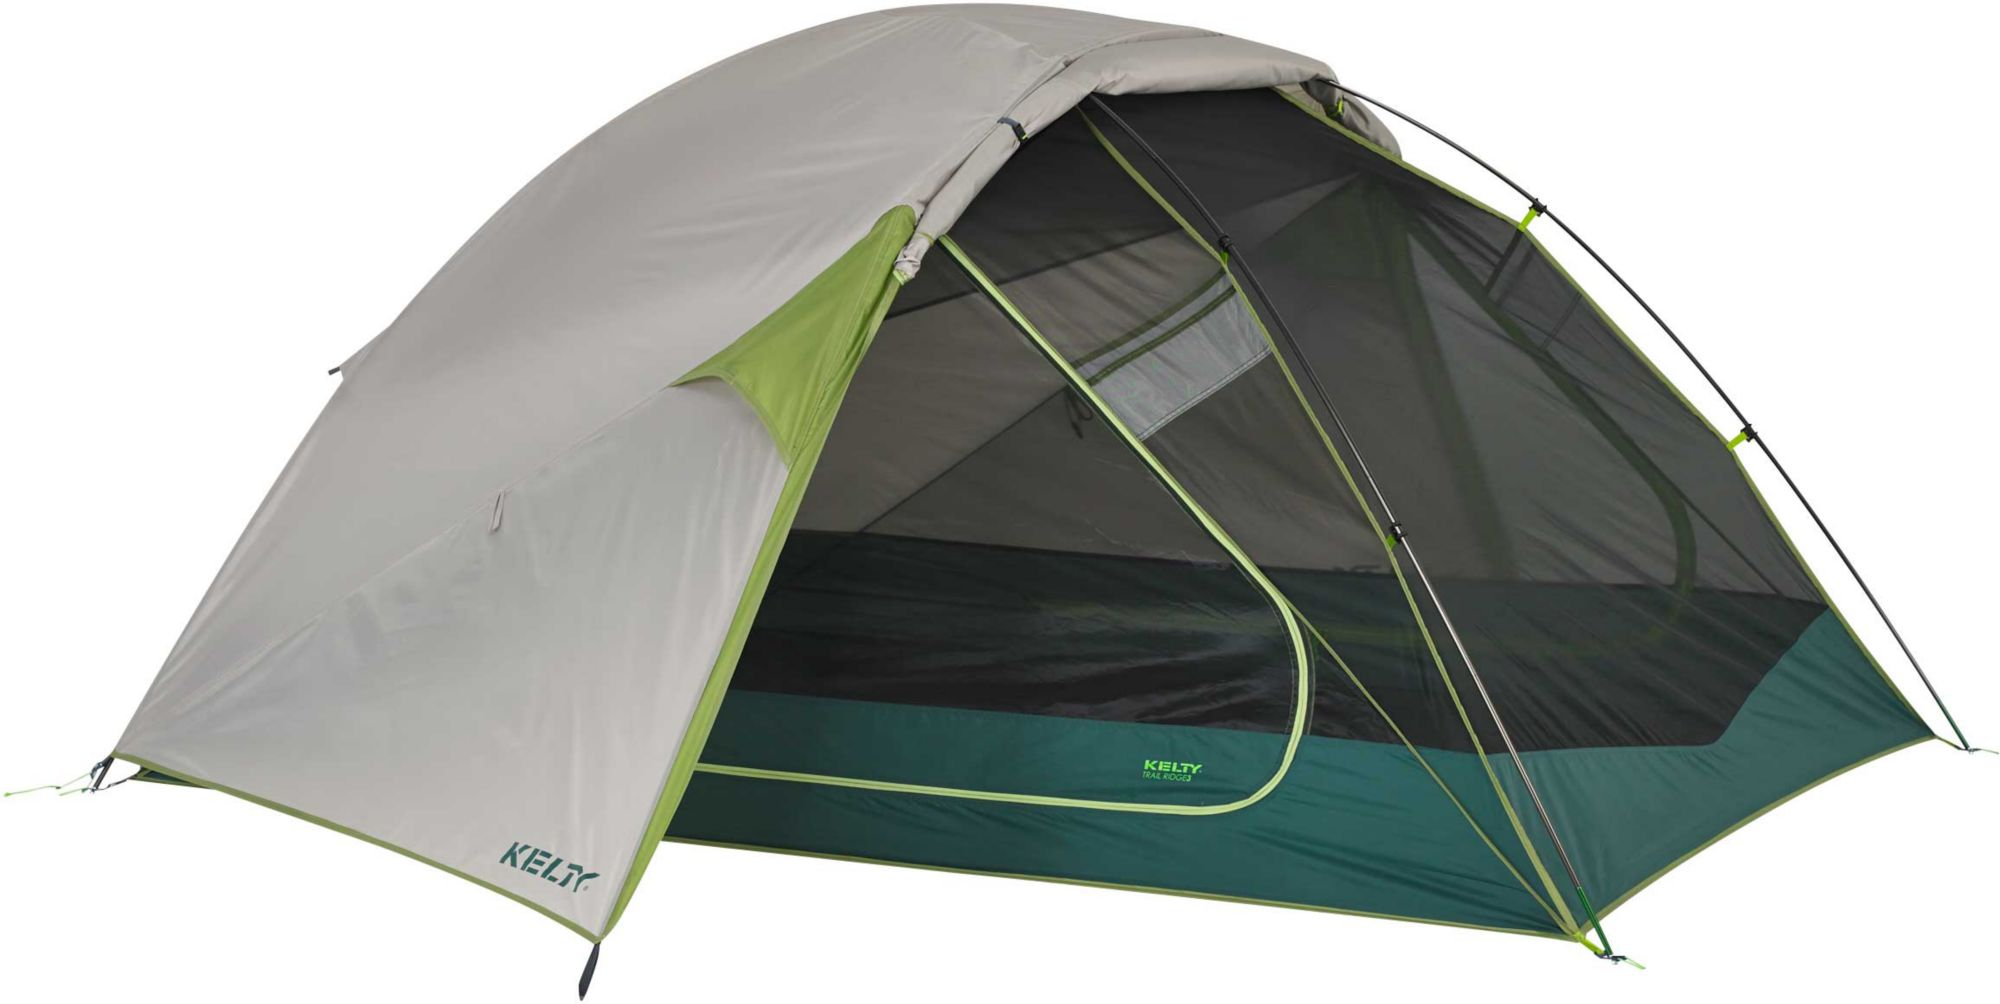 Kelty Trail Ridge 4 Person Tent and Footprint  sc 1 st  DICKu0027S Sporting Goods & Kelty Trail Ridge 4 Person Tent and Footprint | DICKu0027S Sporting Goods